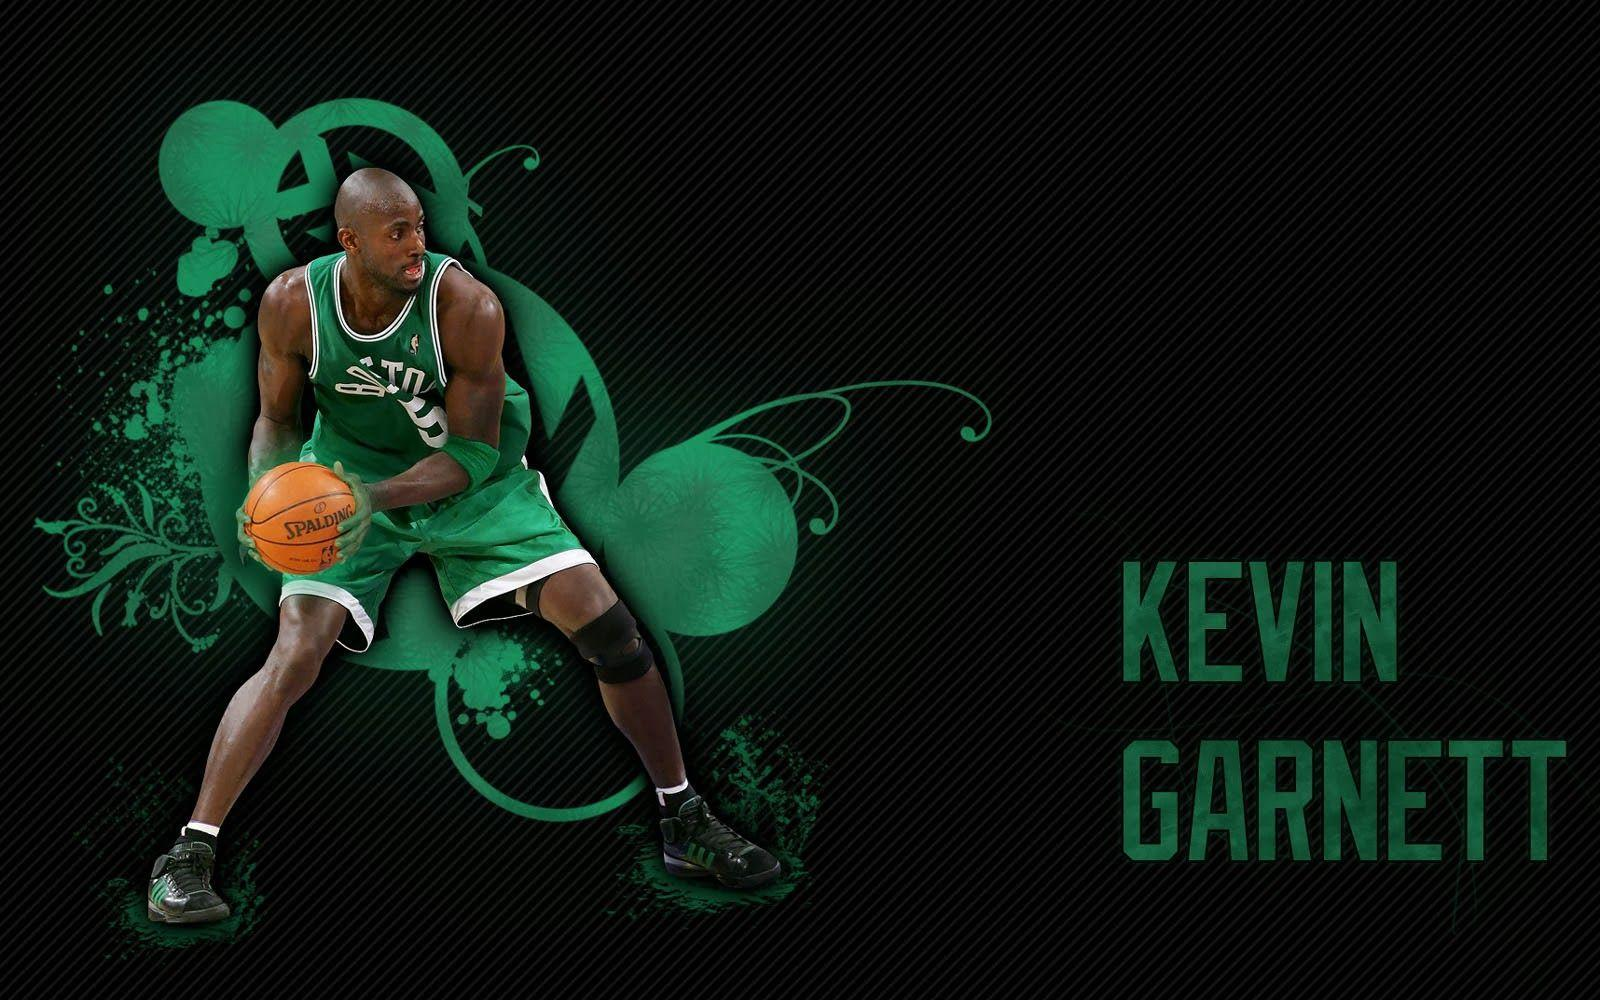 Kevin Garnett Cars Pictures to Pin